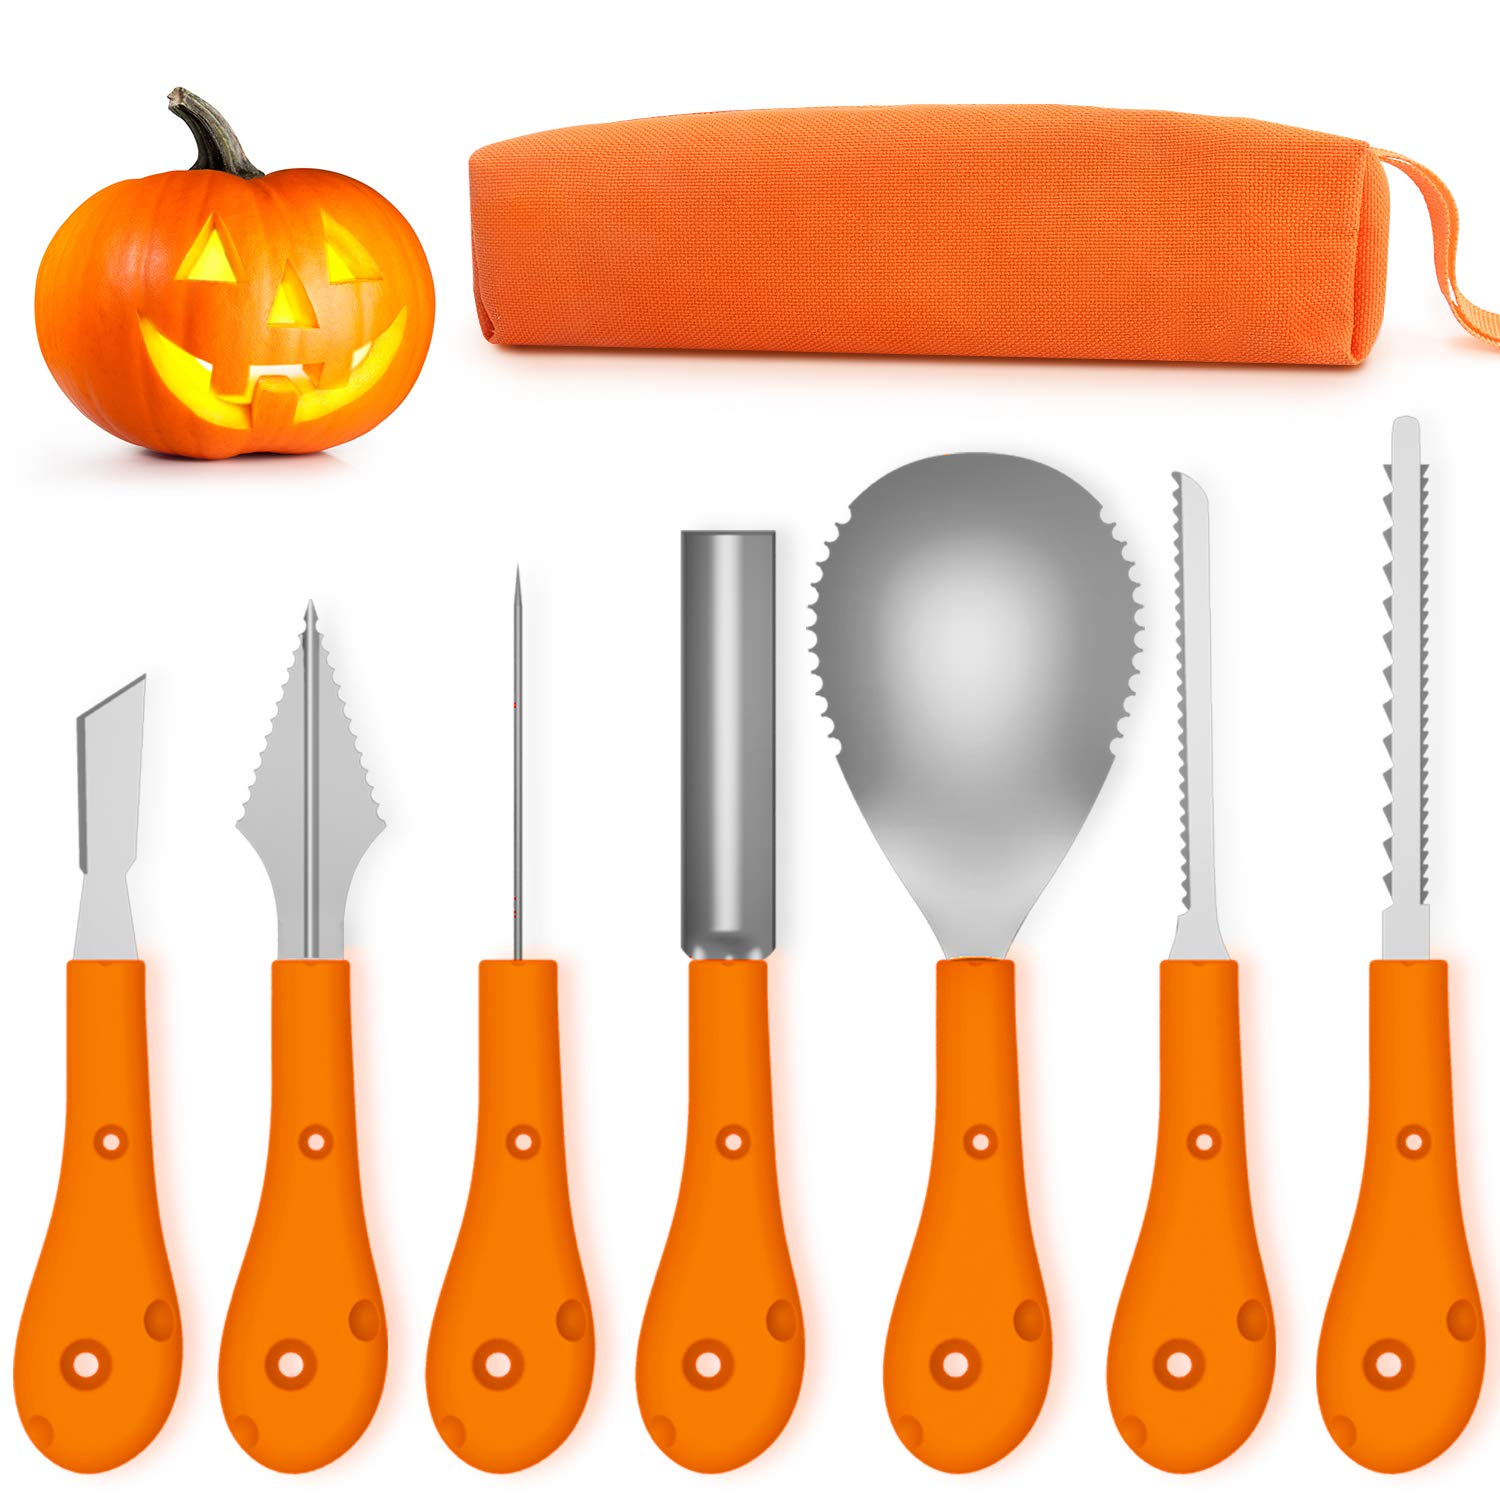 Greatever Halloween Pumpkin Carving Kit,Professional and Heavy Duty Stainless Steel Tools,Pumpkin Carving Set with Carrying Case (7Pcs) by Greatever